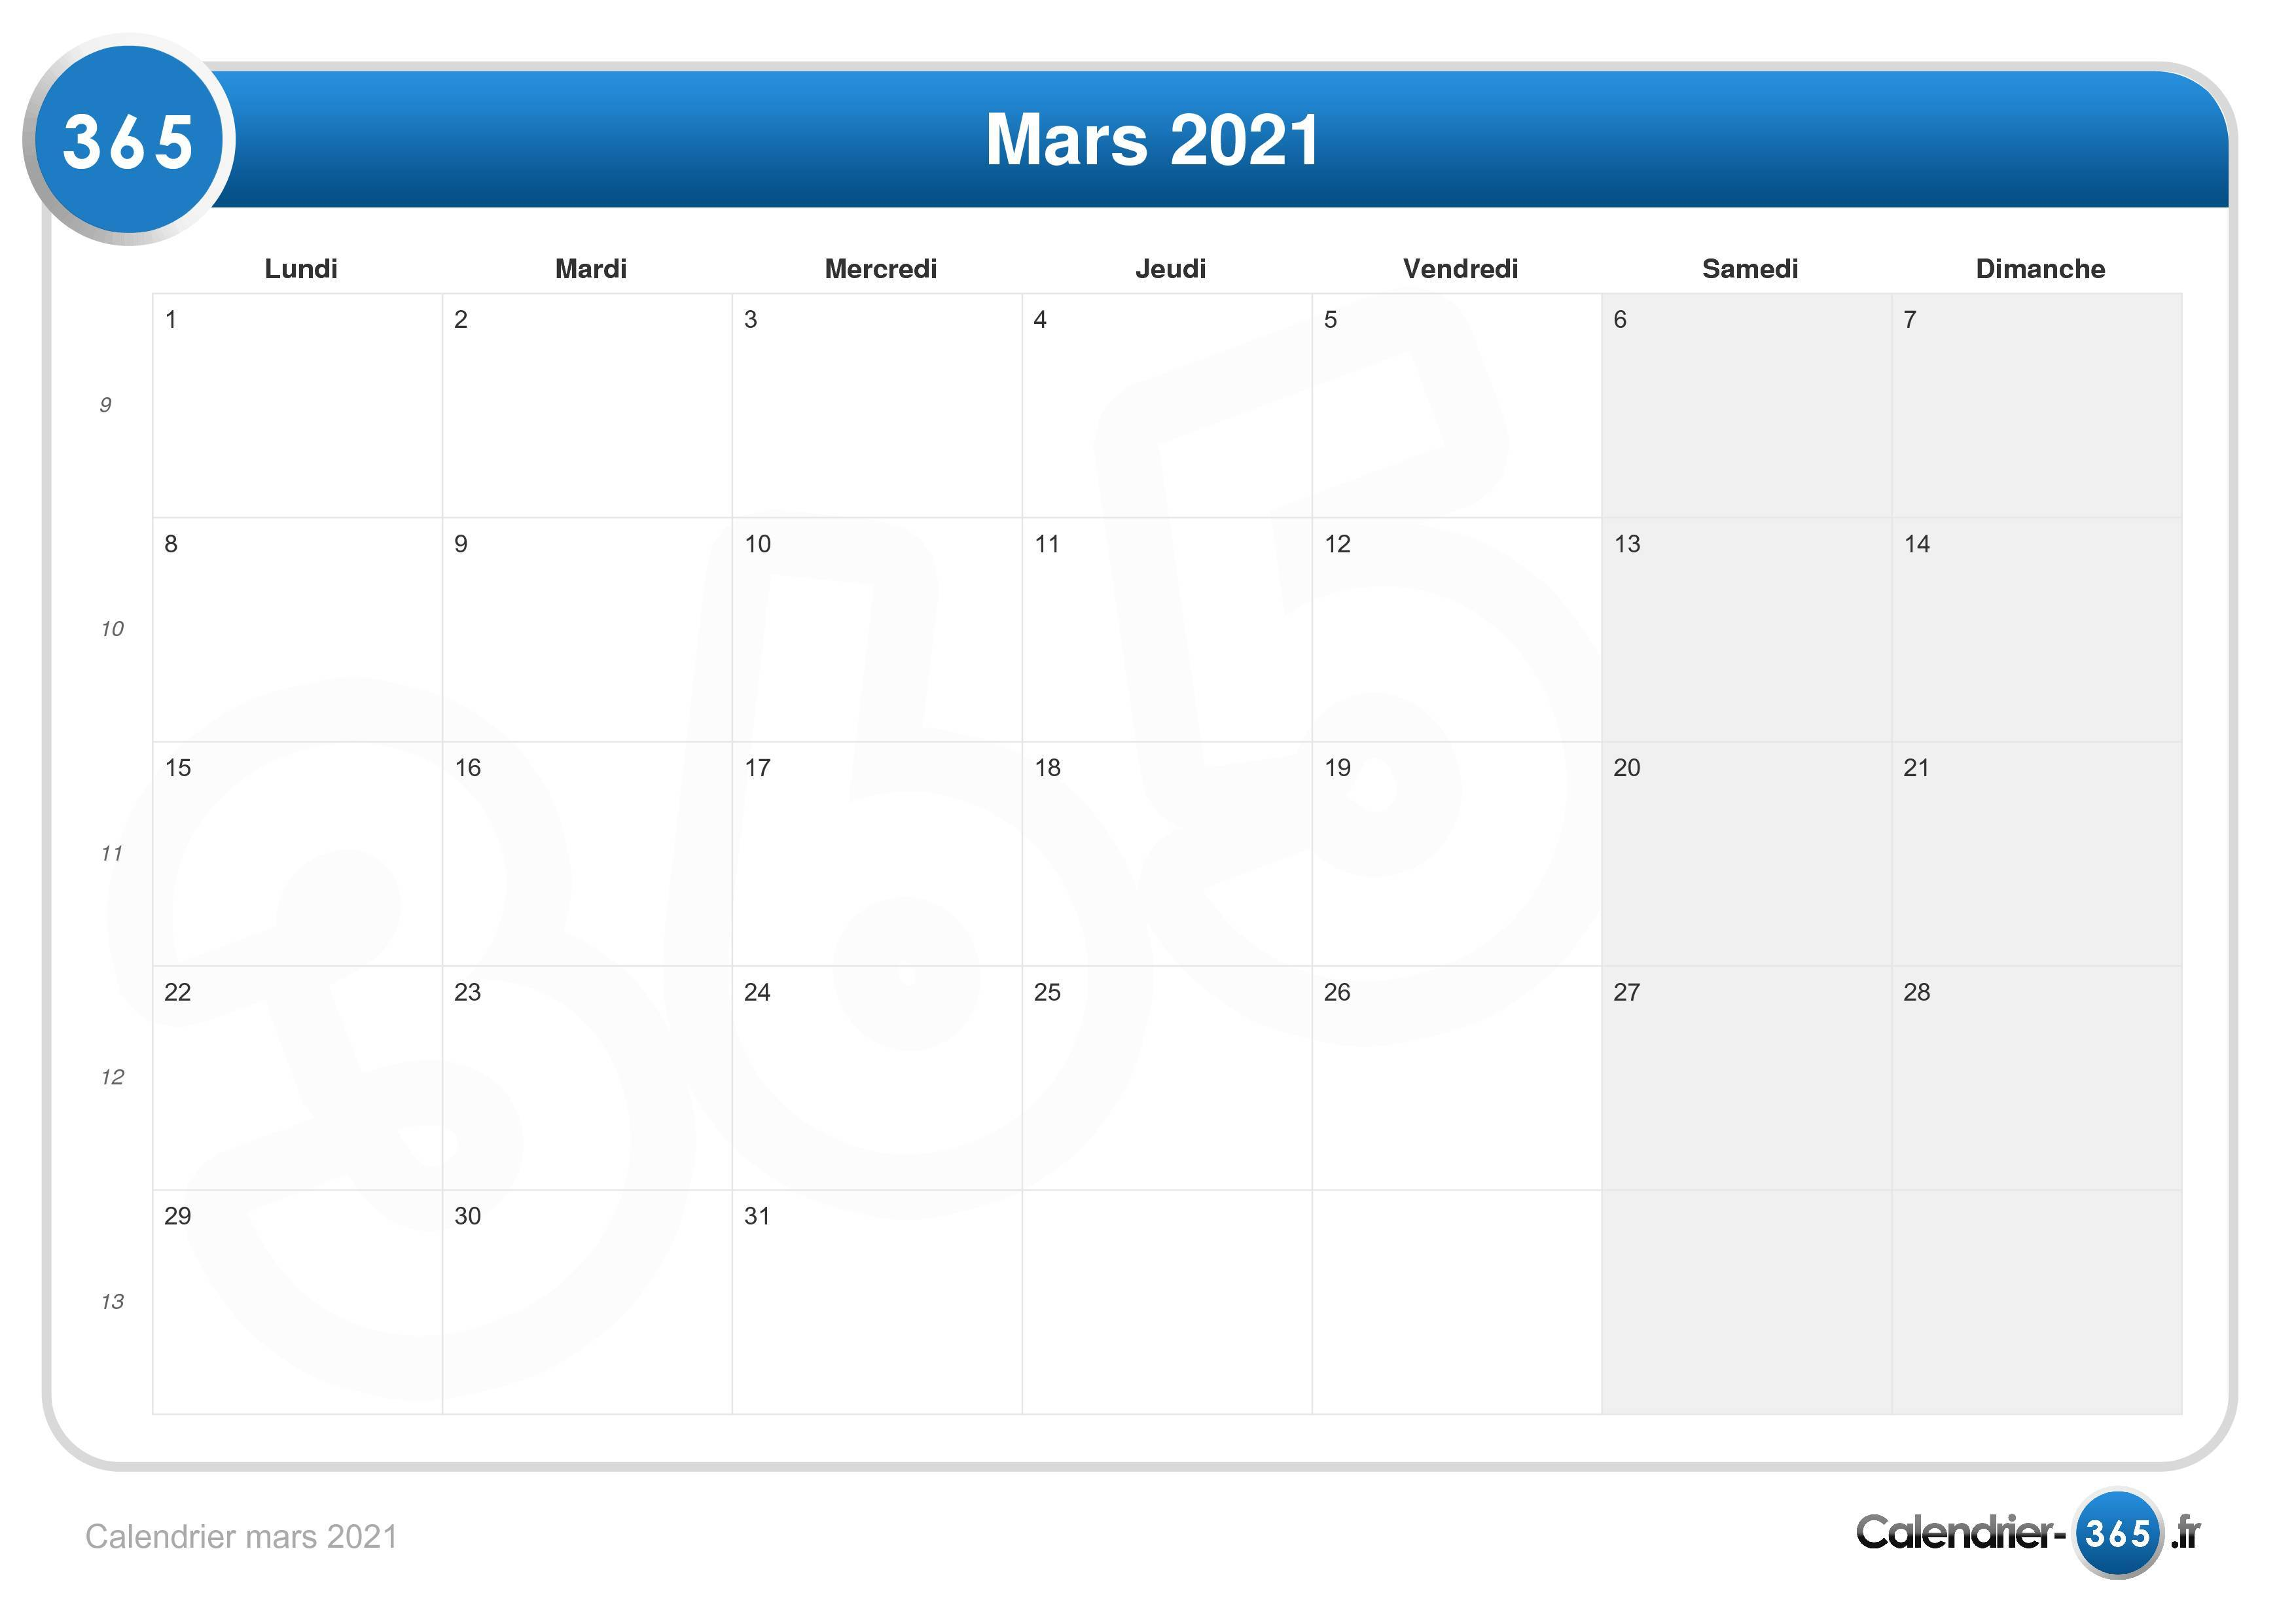 Mars 2021 Calendrier Calendrier mars 2021